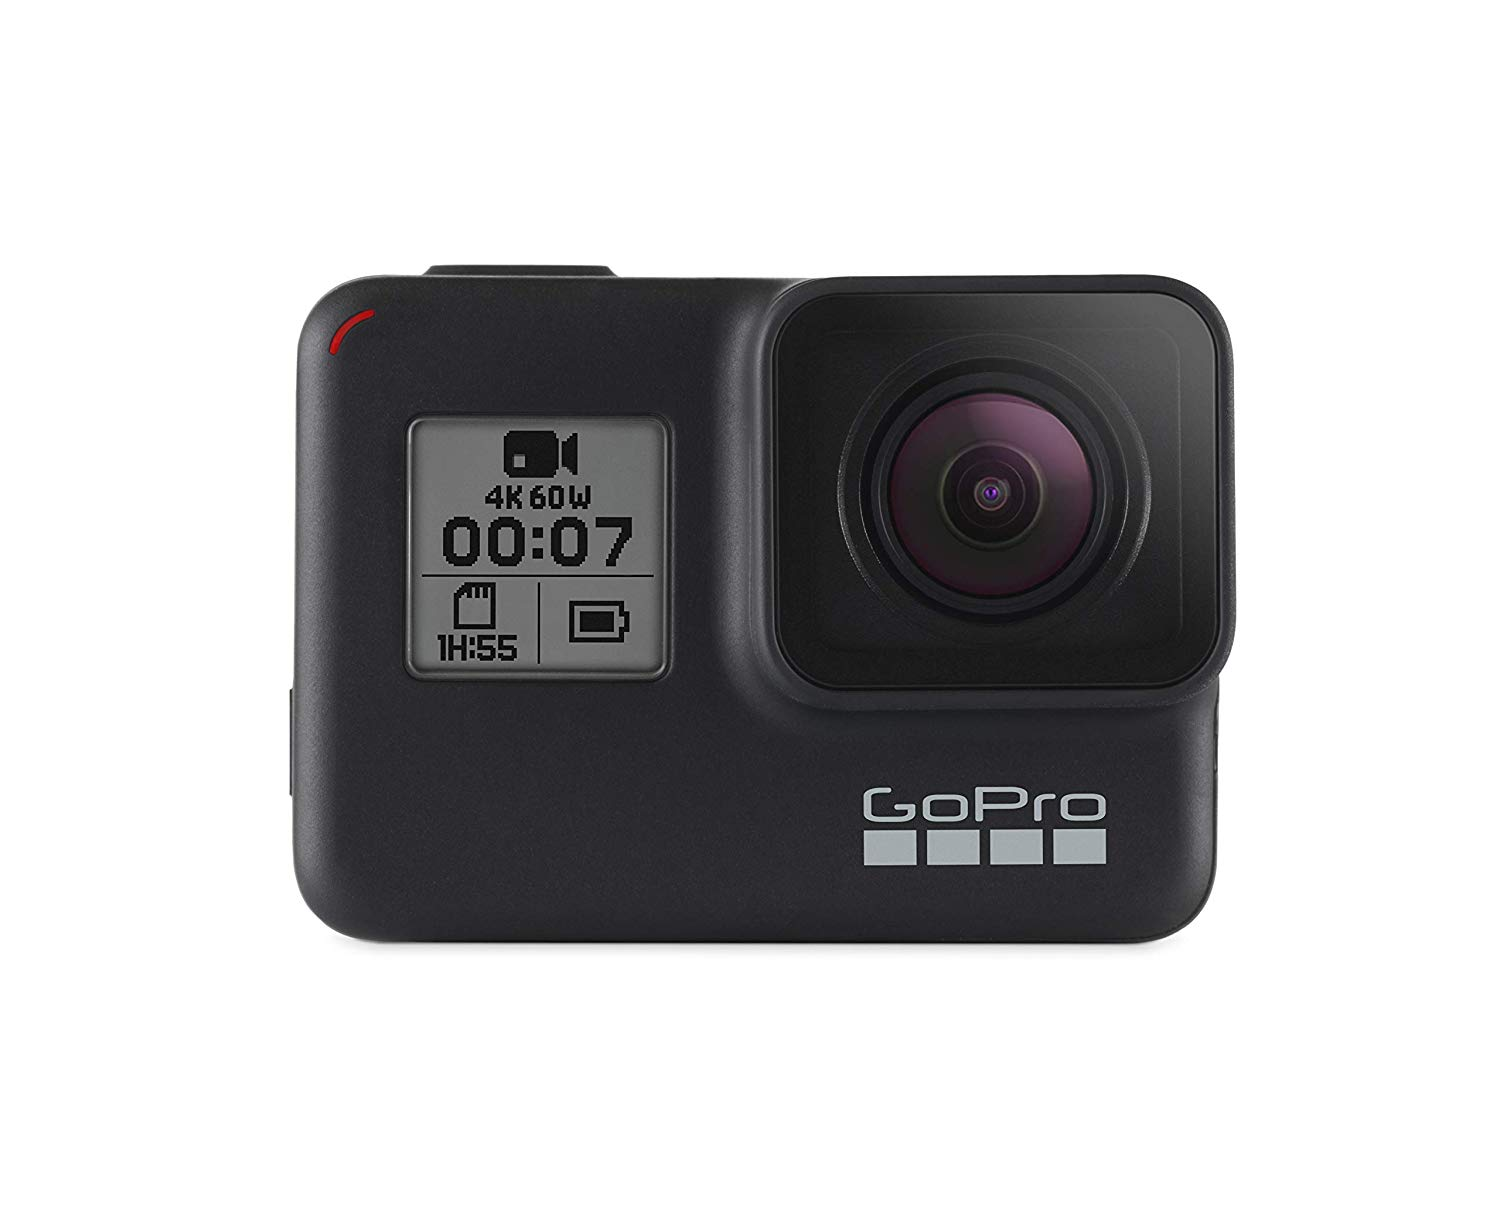 Shop the GoPro HERO7 this Father's Day